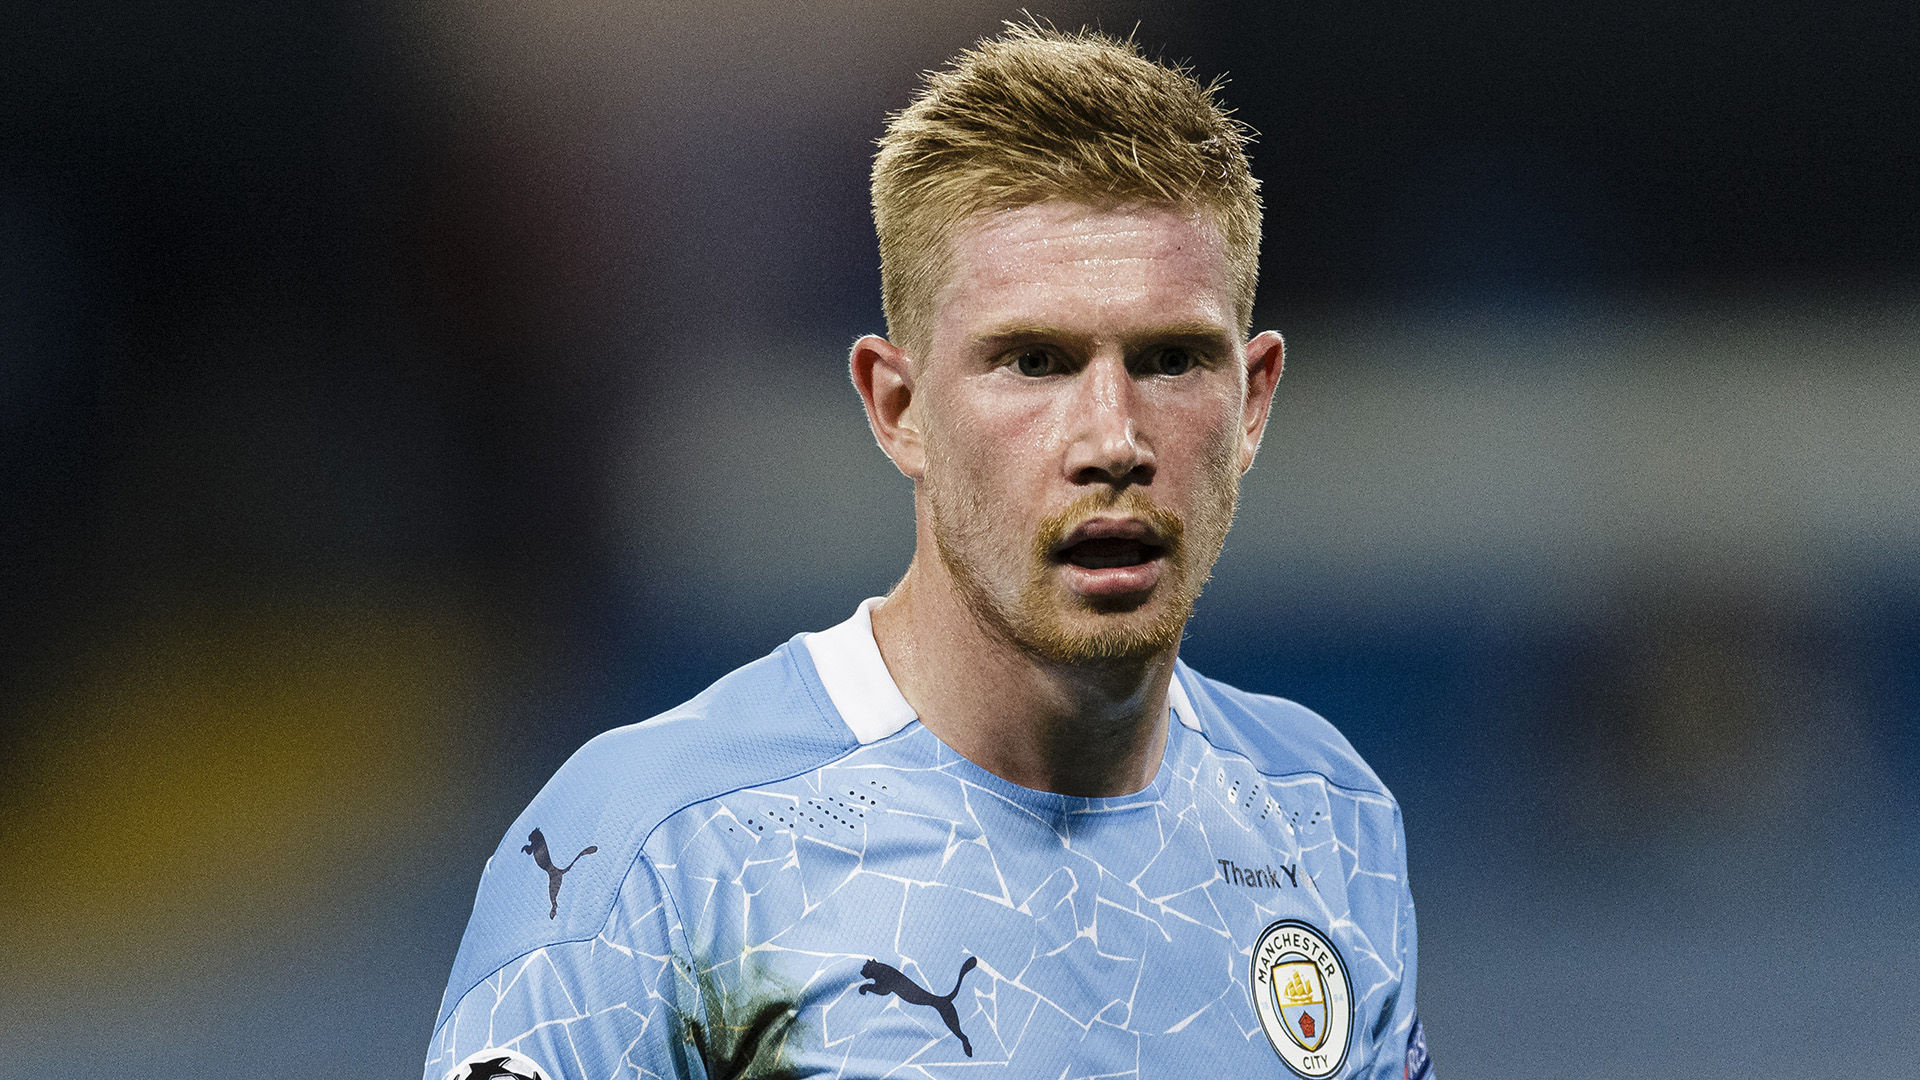 De Bruyne Injury Setback For Manchester City But Aguero Is